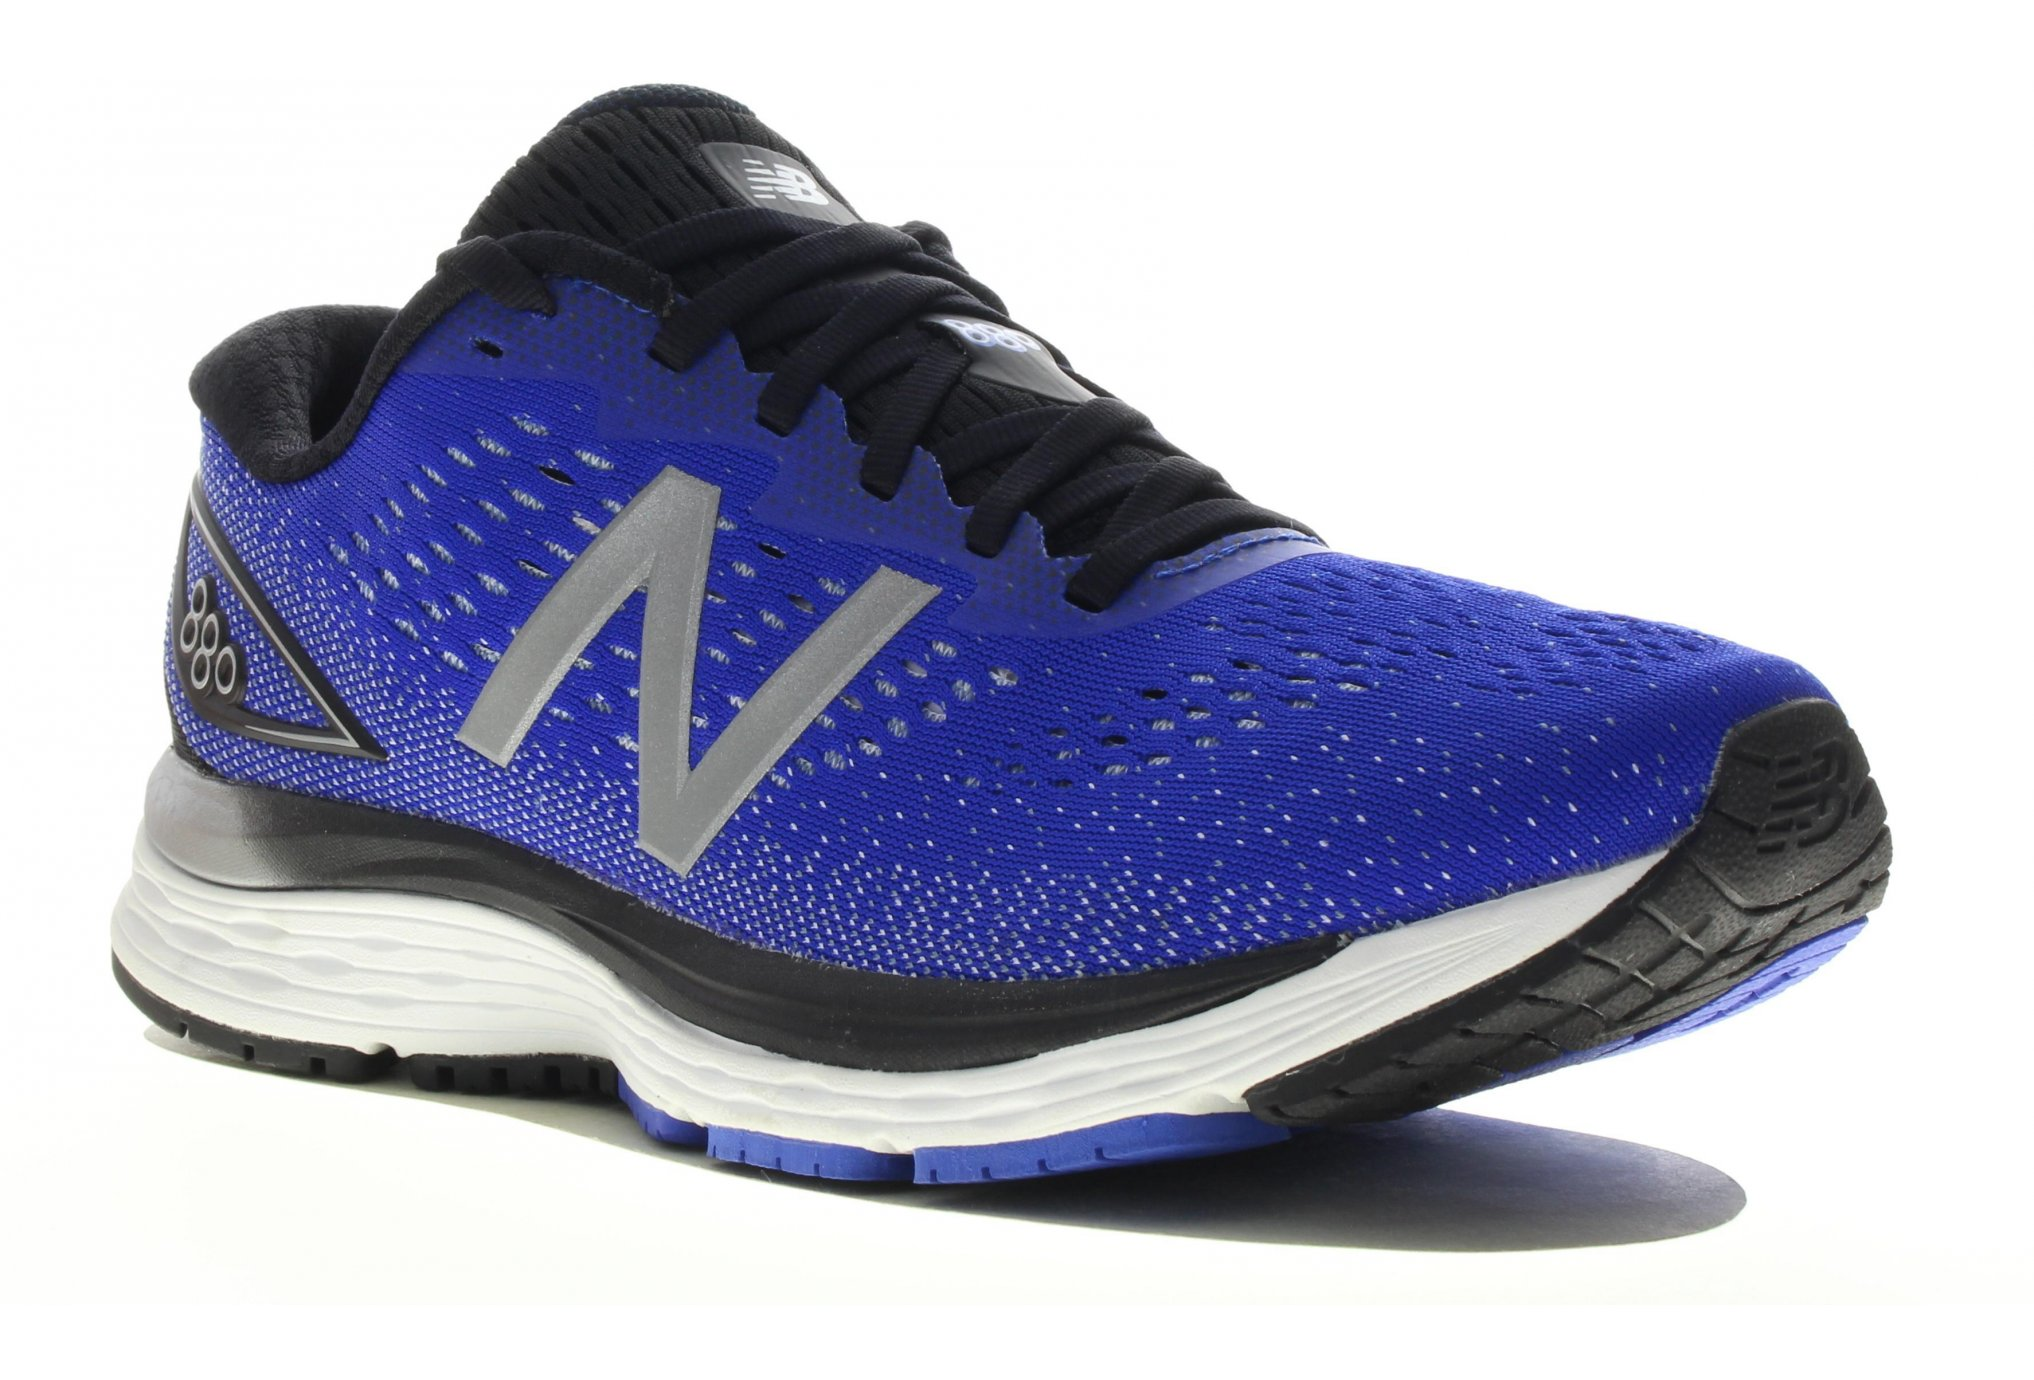 New Balance M 880 V9 - D Chaussures homme